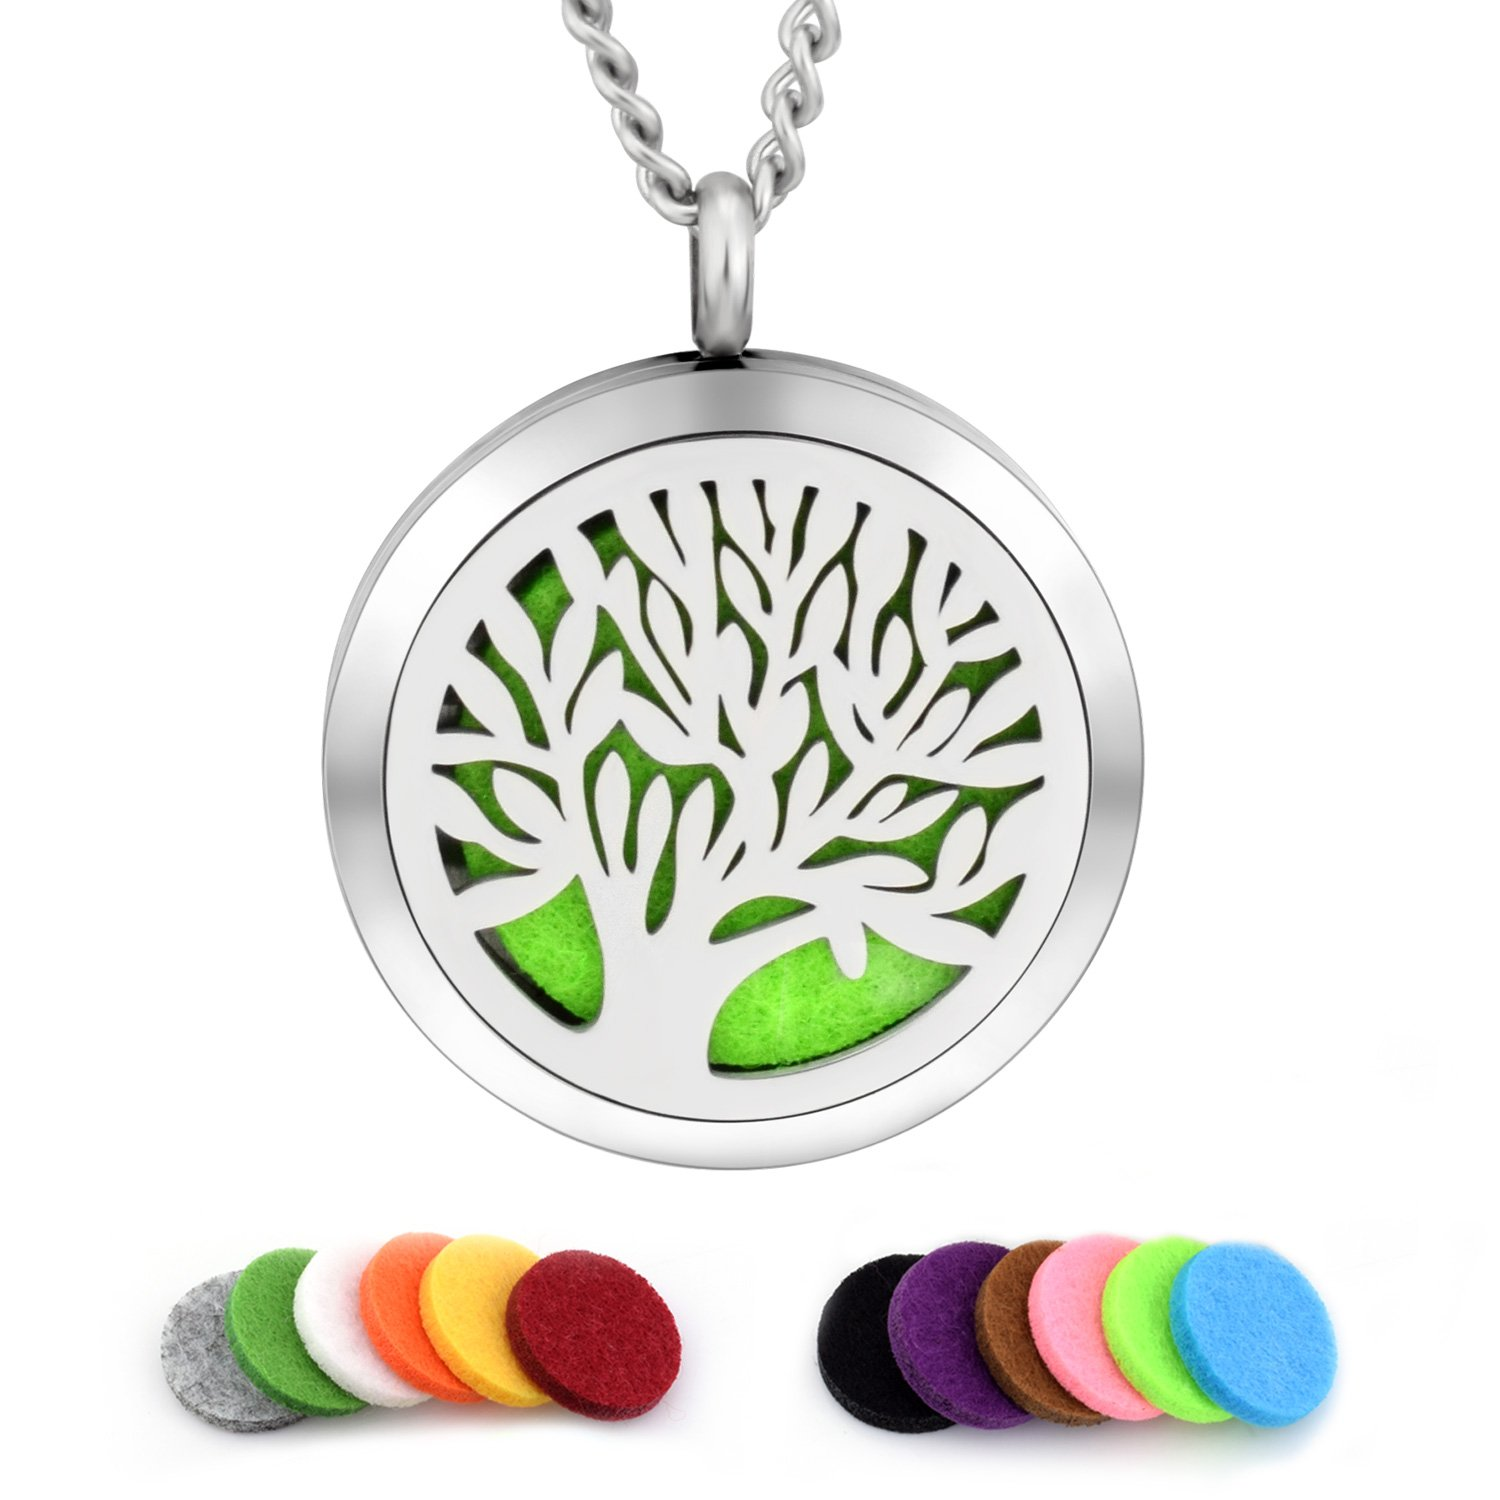 Very nice Diffuser Necklace